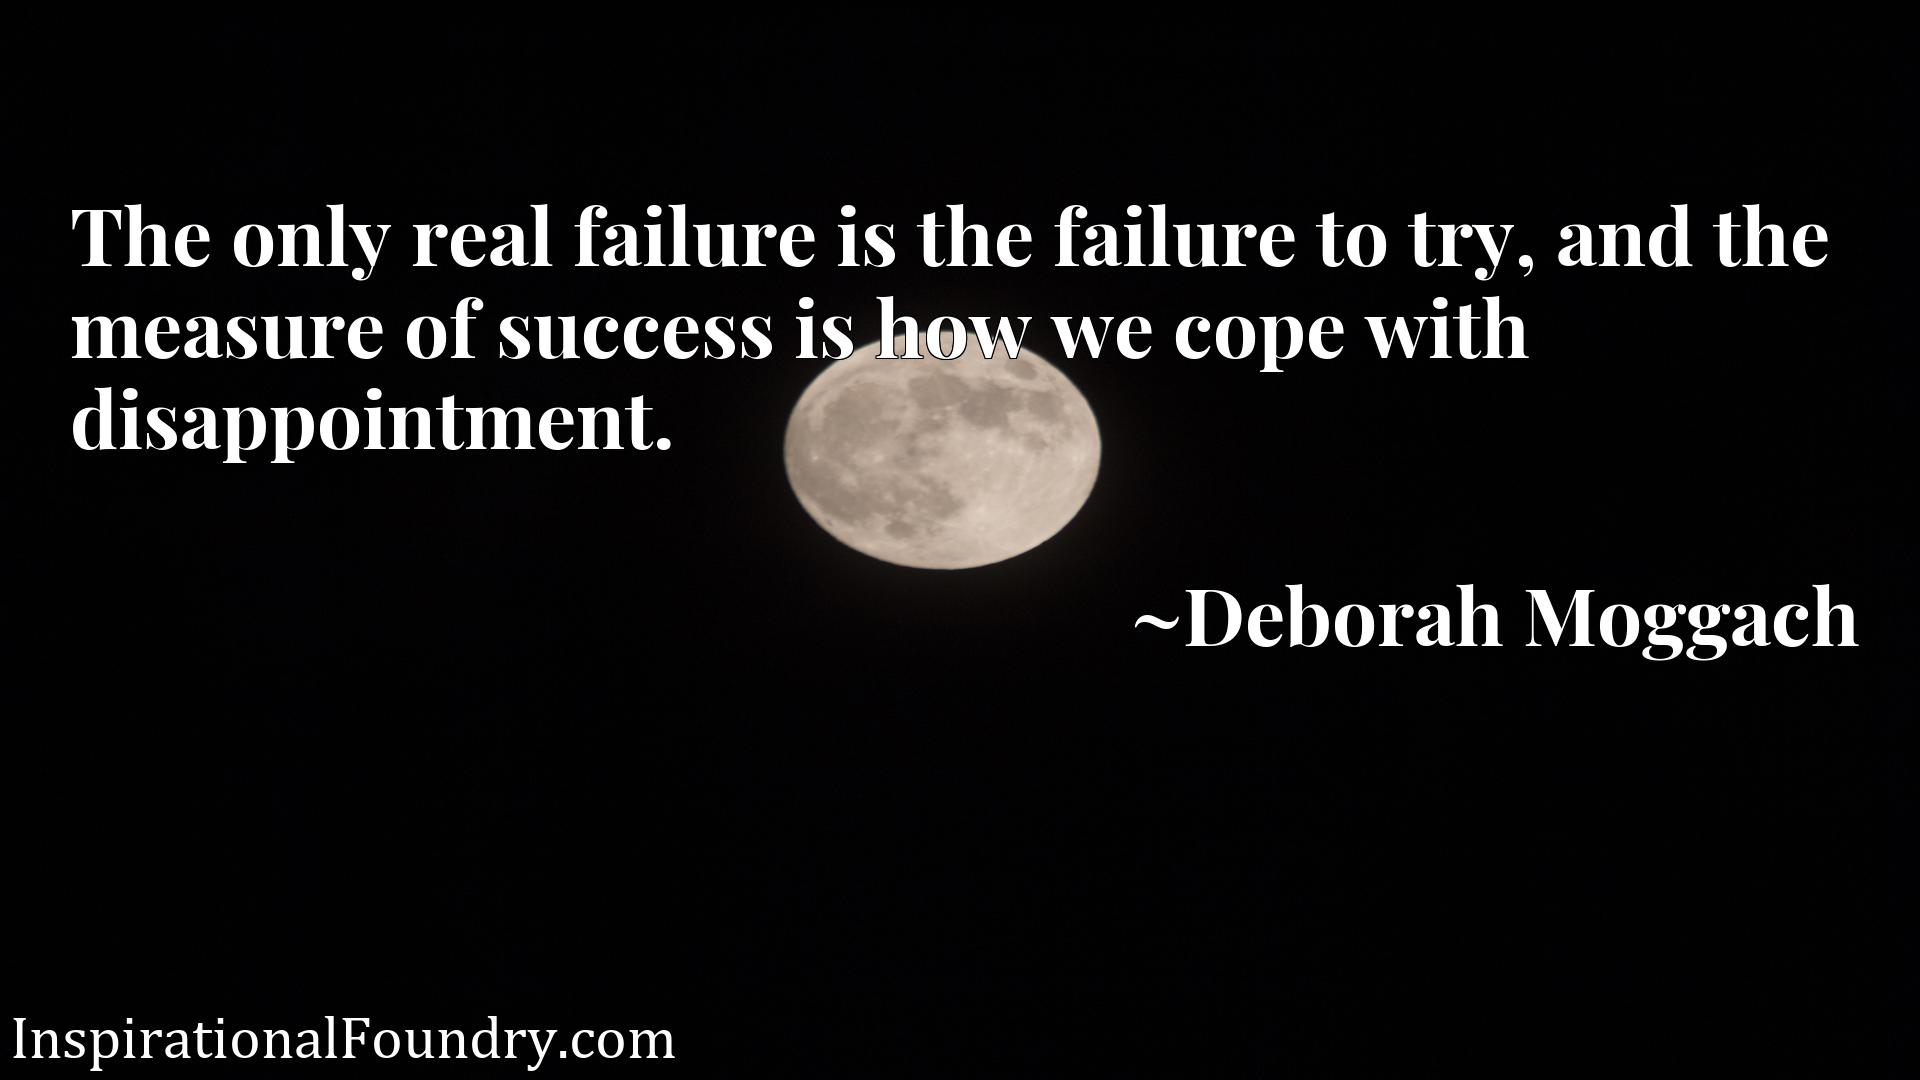 The only real failure is the failure to try, and the measure of success is how we cope with disappointment.